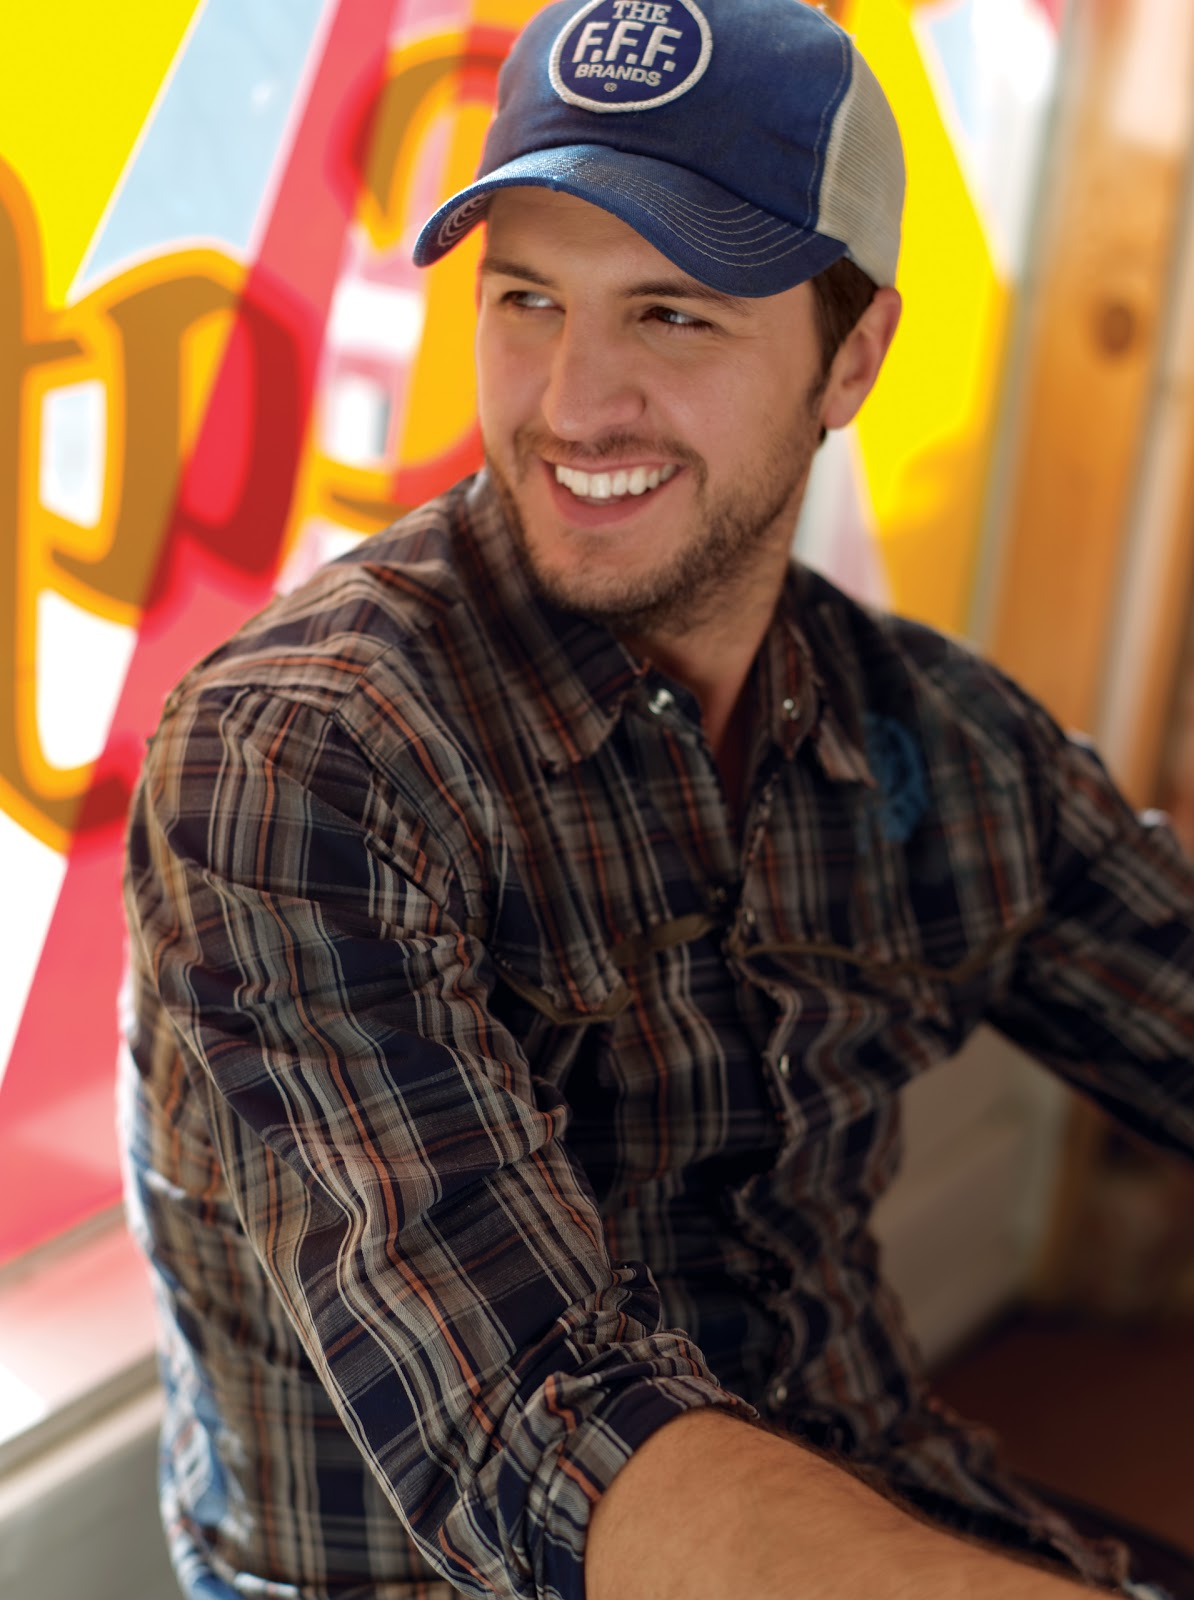 Luke Bryan Nra Country Team Up For The 2010 Farm Tour